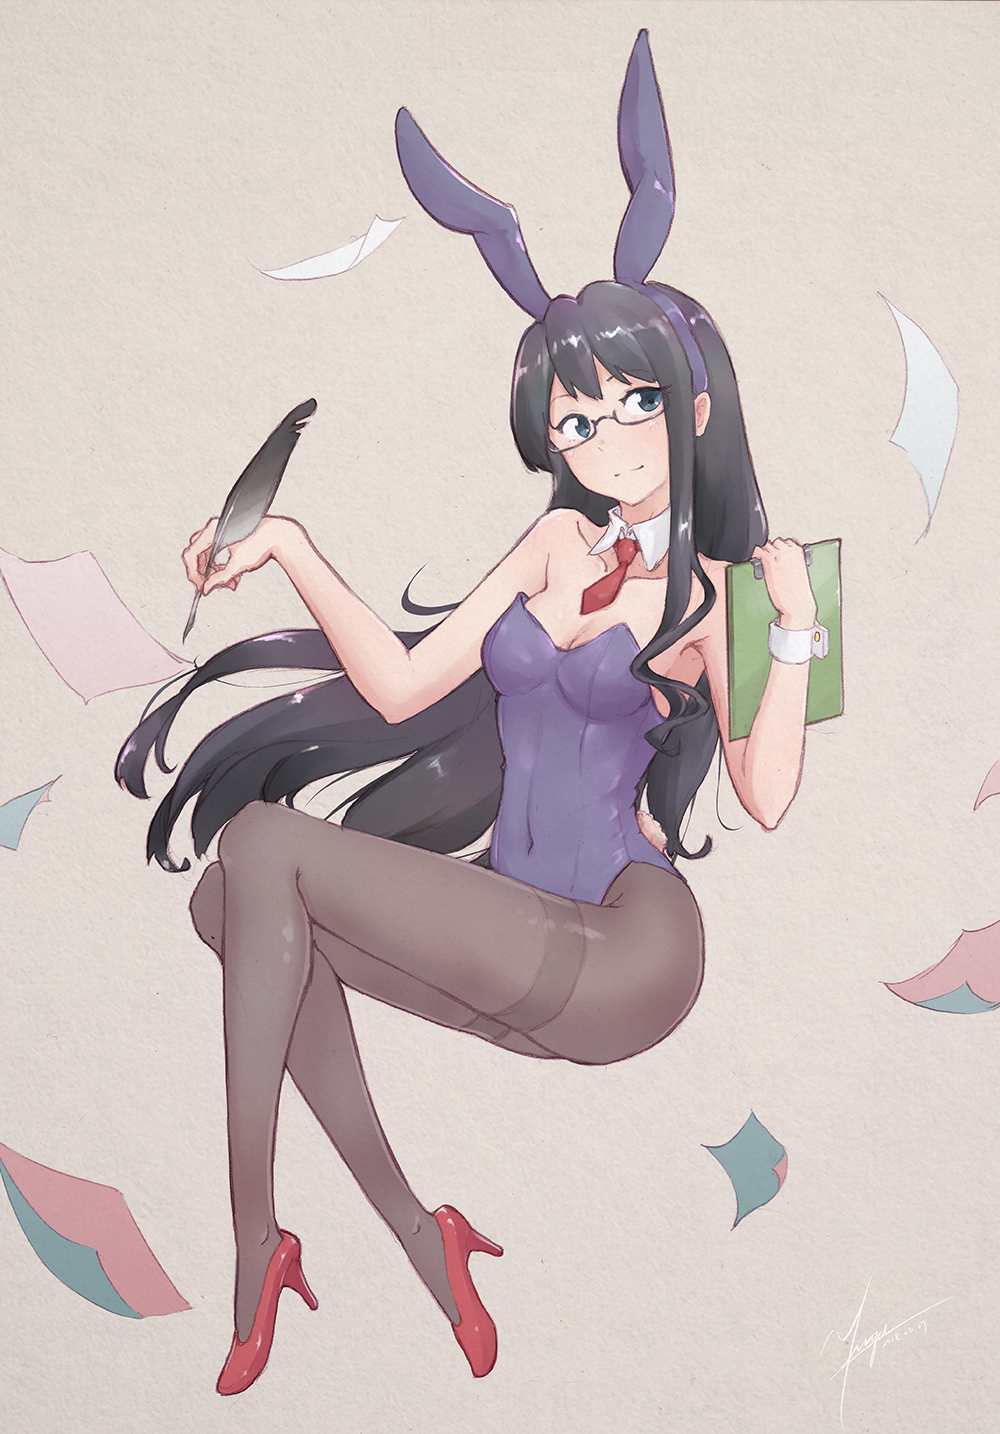 1girl animal_ears black_eyes black_hair blue_eyes breasts brown_legwear bunny_girl bunnysuit clipboard full_body glasses grey_background highres kantai_collection leotard long_hair necktie ooyodo_(kantai_collection) pantyhose paper purple_leotard quill rabbit_ears red_neckwear semi-rimless_eyewear simple_background small_breasts smile solo strapless strapless_leotard thighband_pantyhose under-rim_eyewear yirga